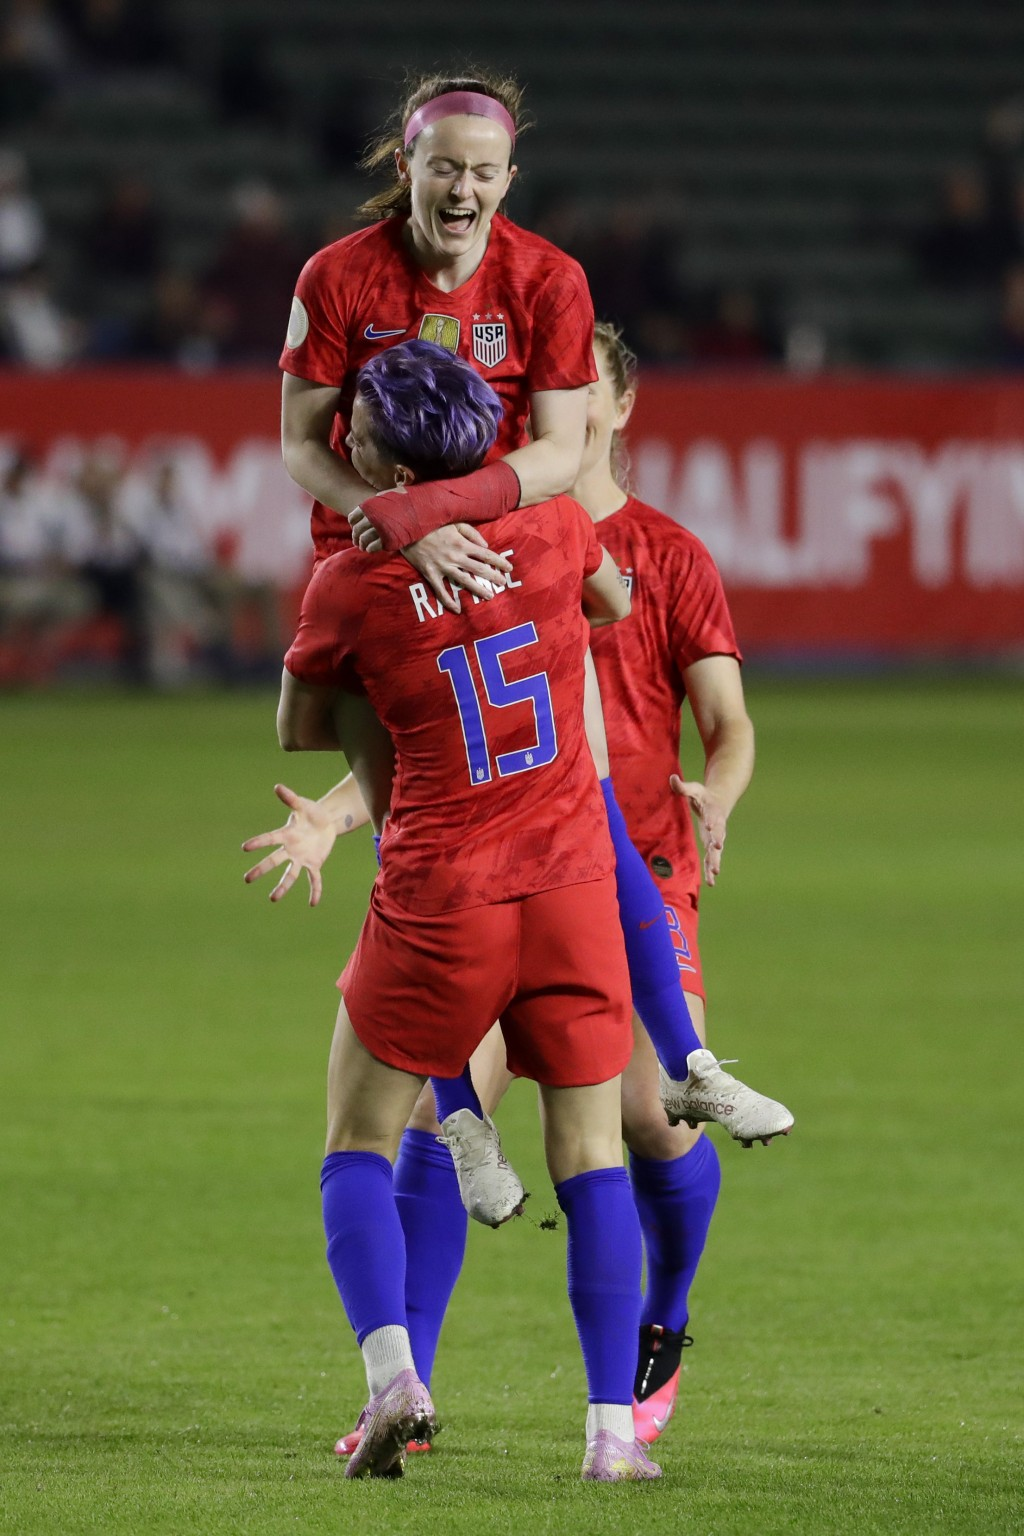 U.S. midfielder Rose Lavelle, top, celebrates with forward Megan Rapinoe after scoring against Mexico during the first half of a CONCACAF women's Olym...